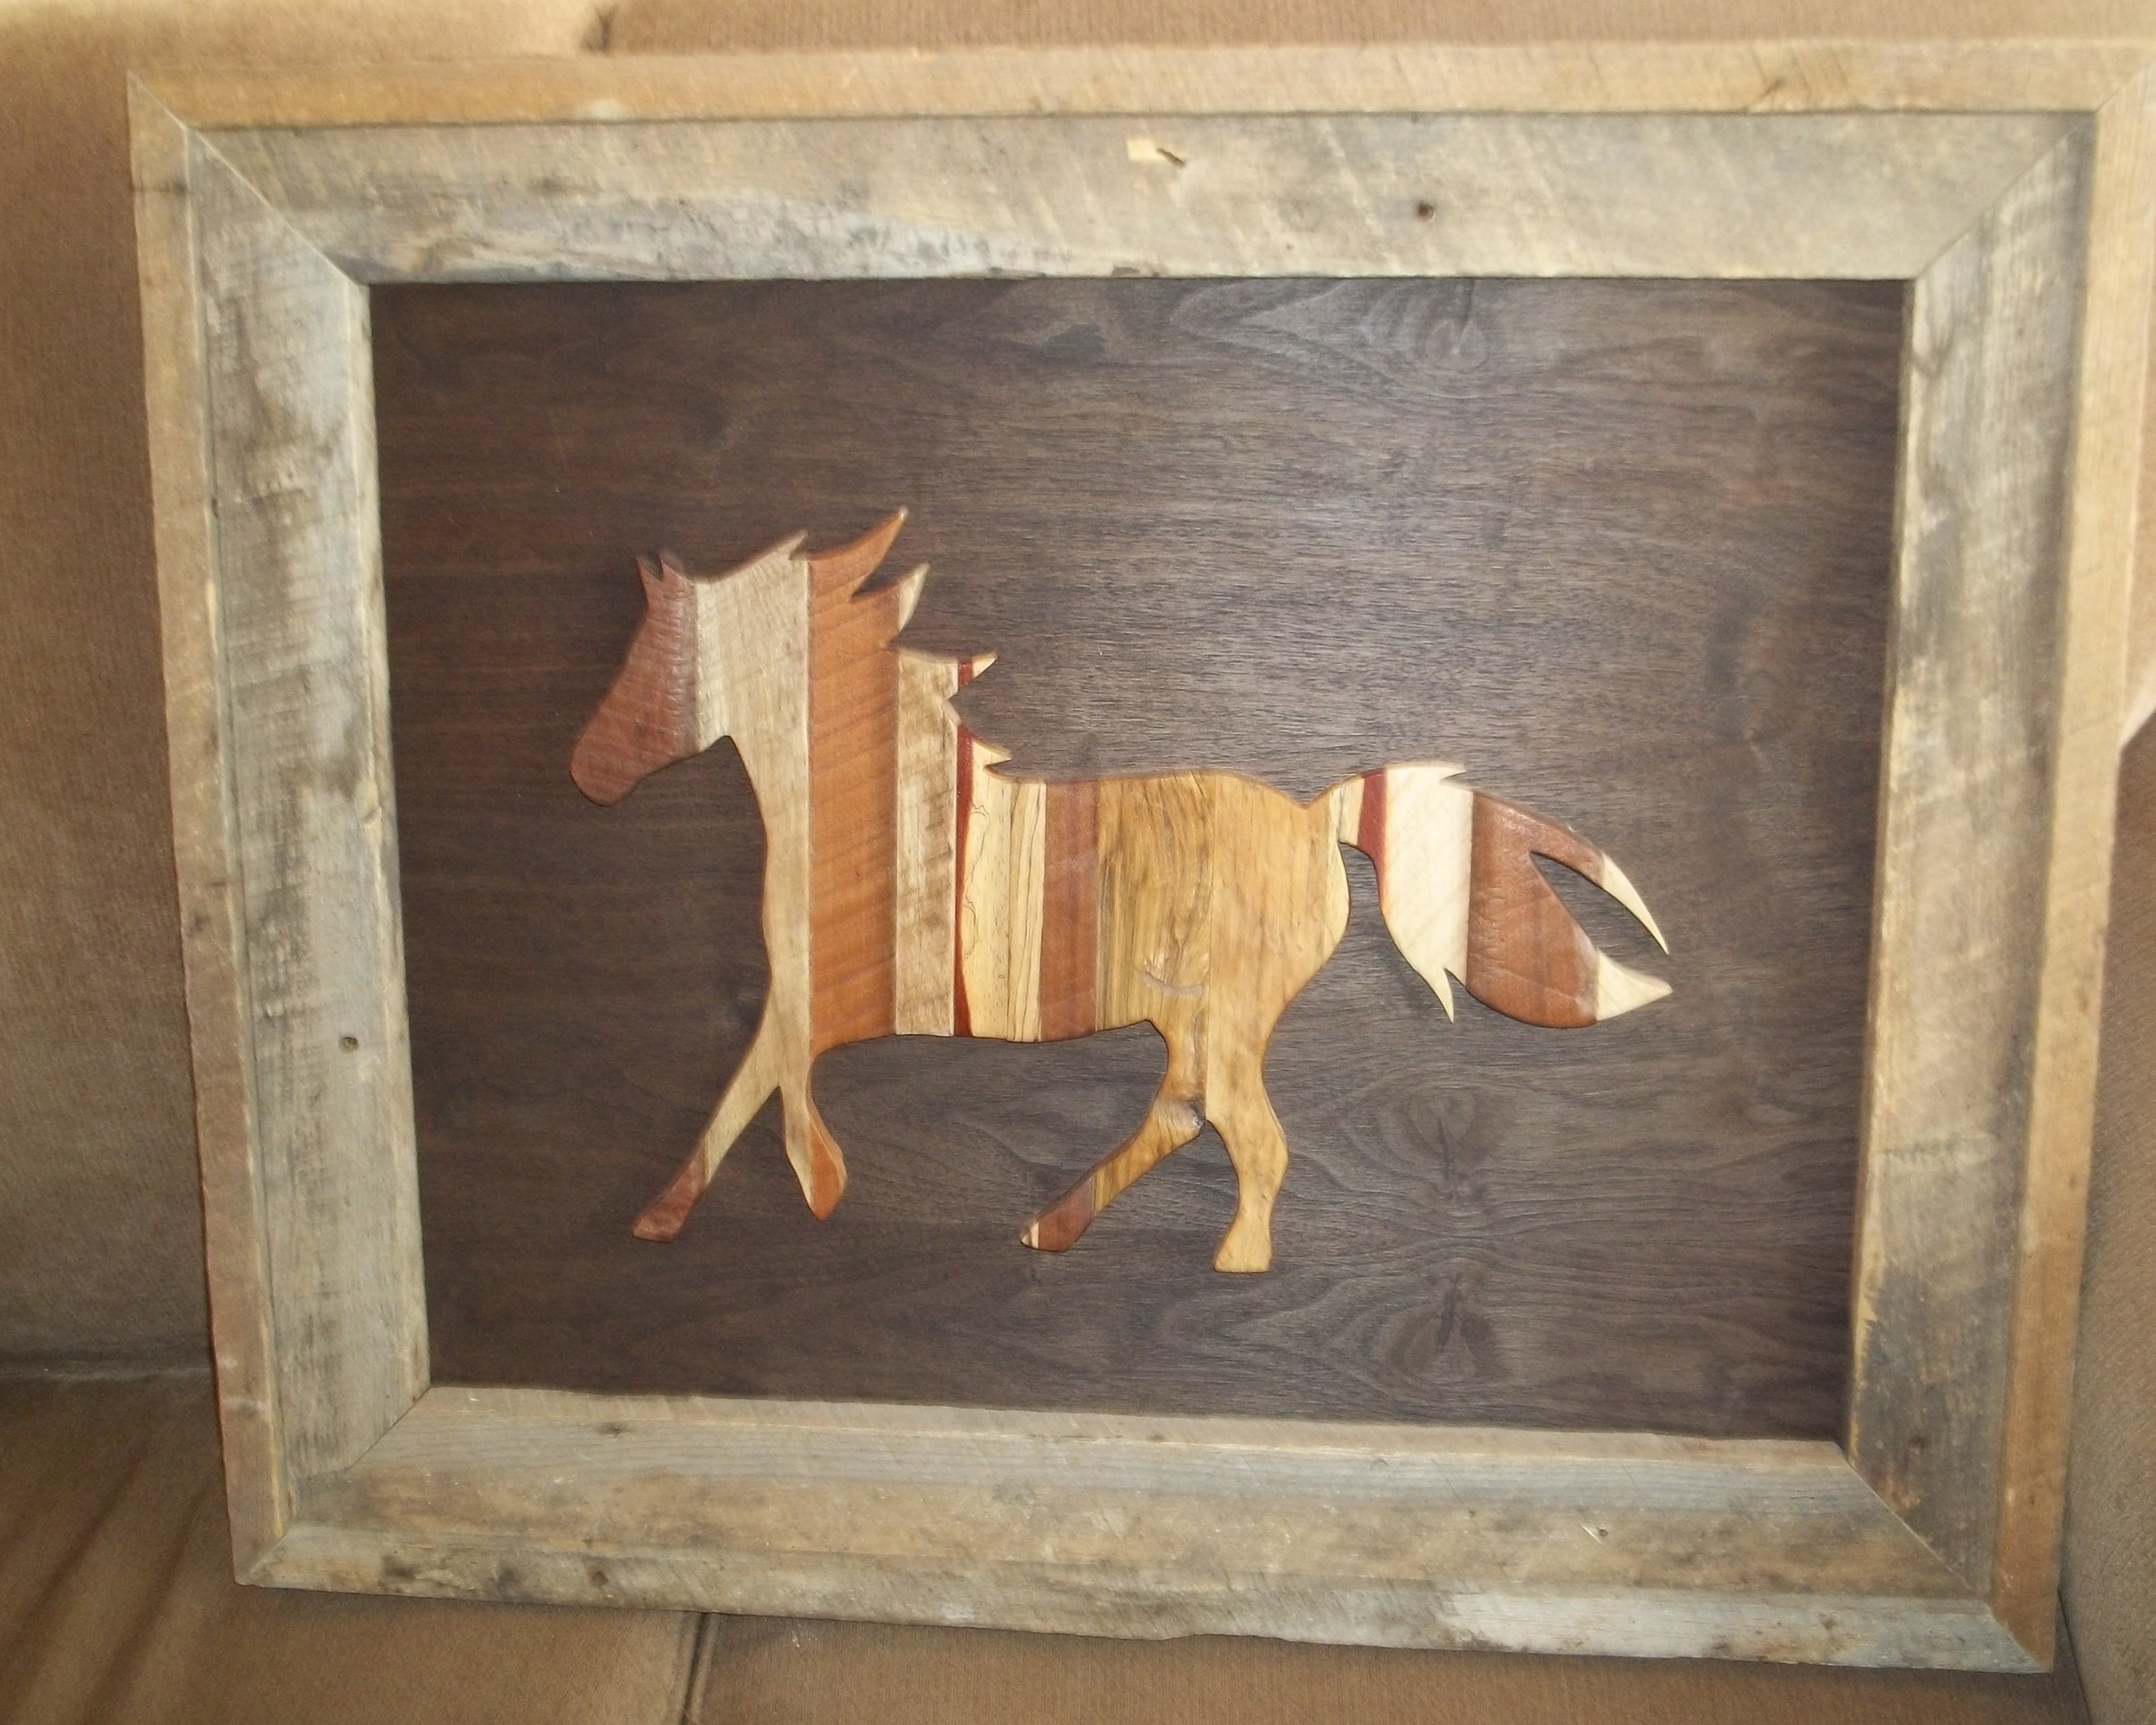 Wall Hangings – Woodart by Ron MacKendrick